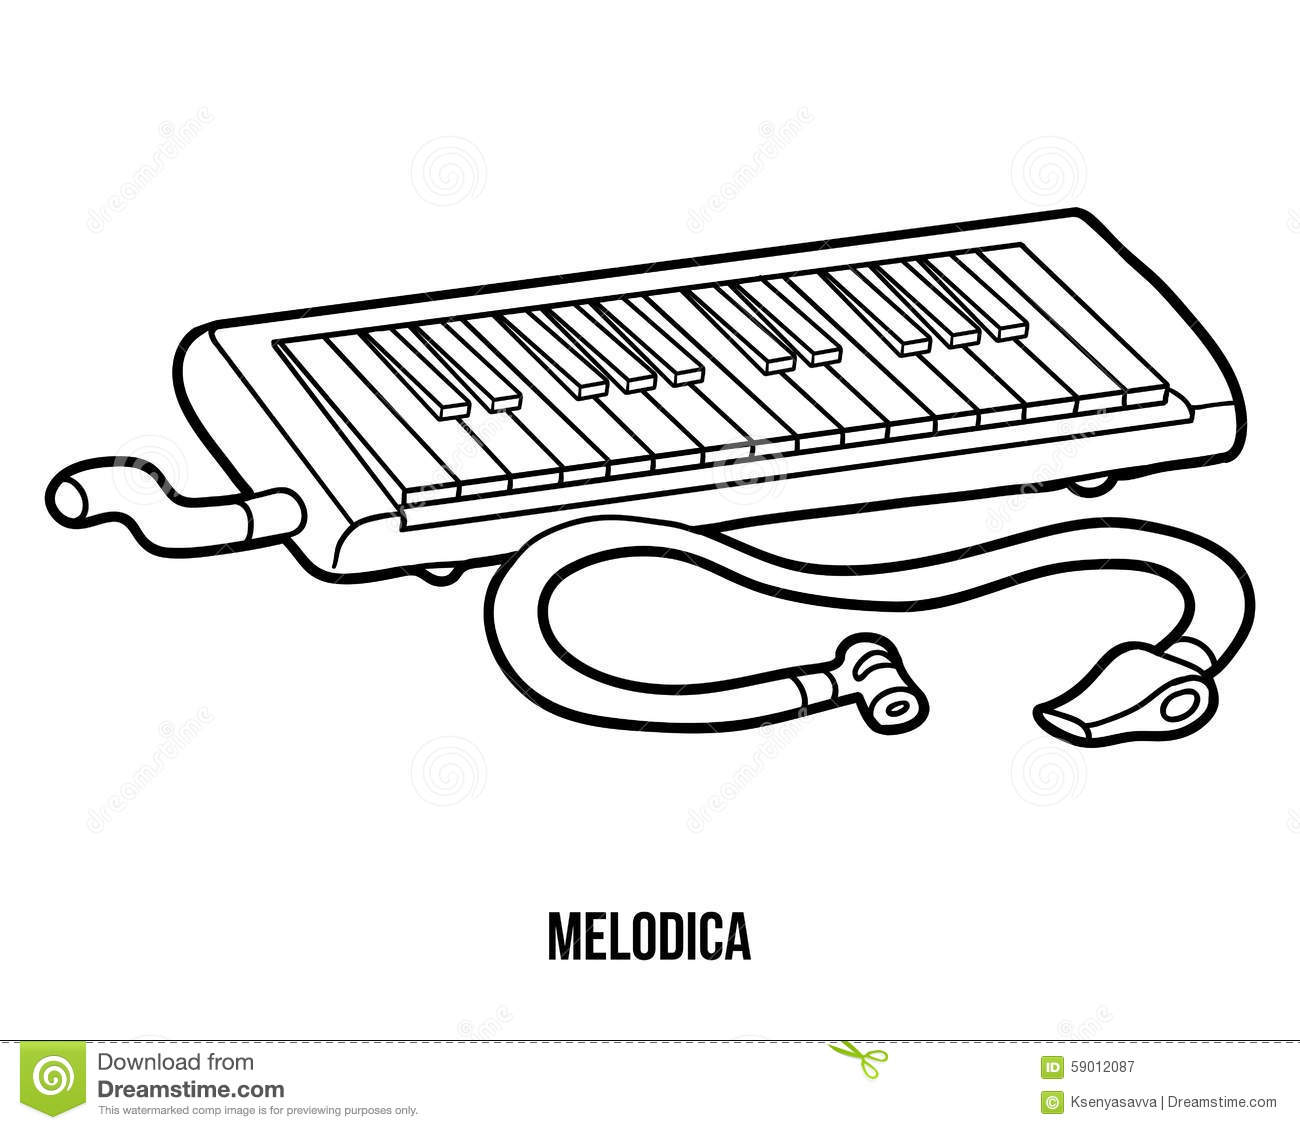 Coloring instruments - Coloring Book Musical Instruments Melodica